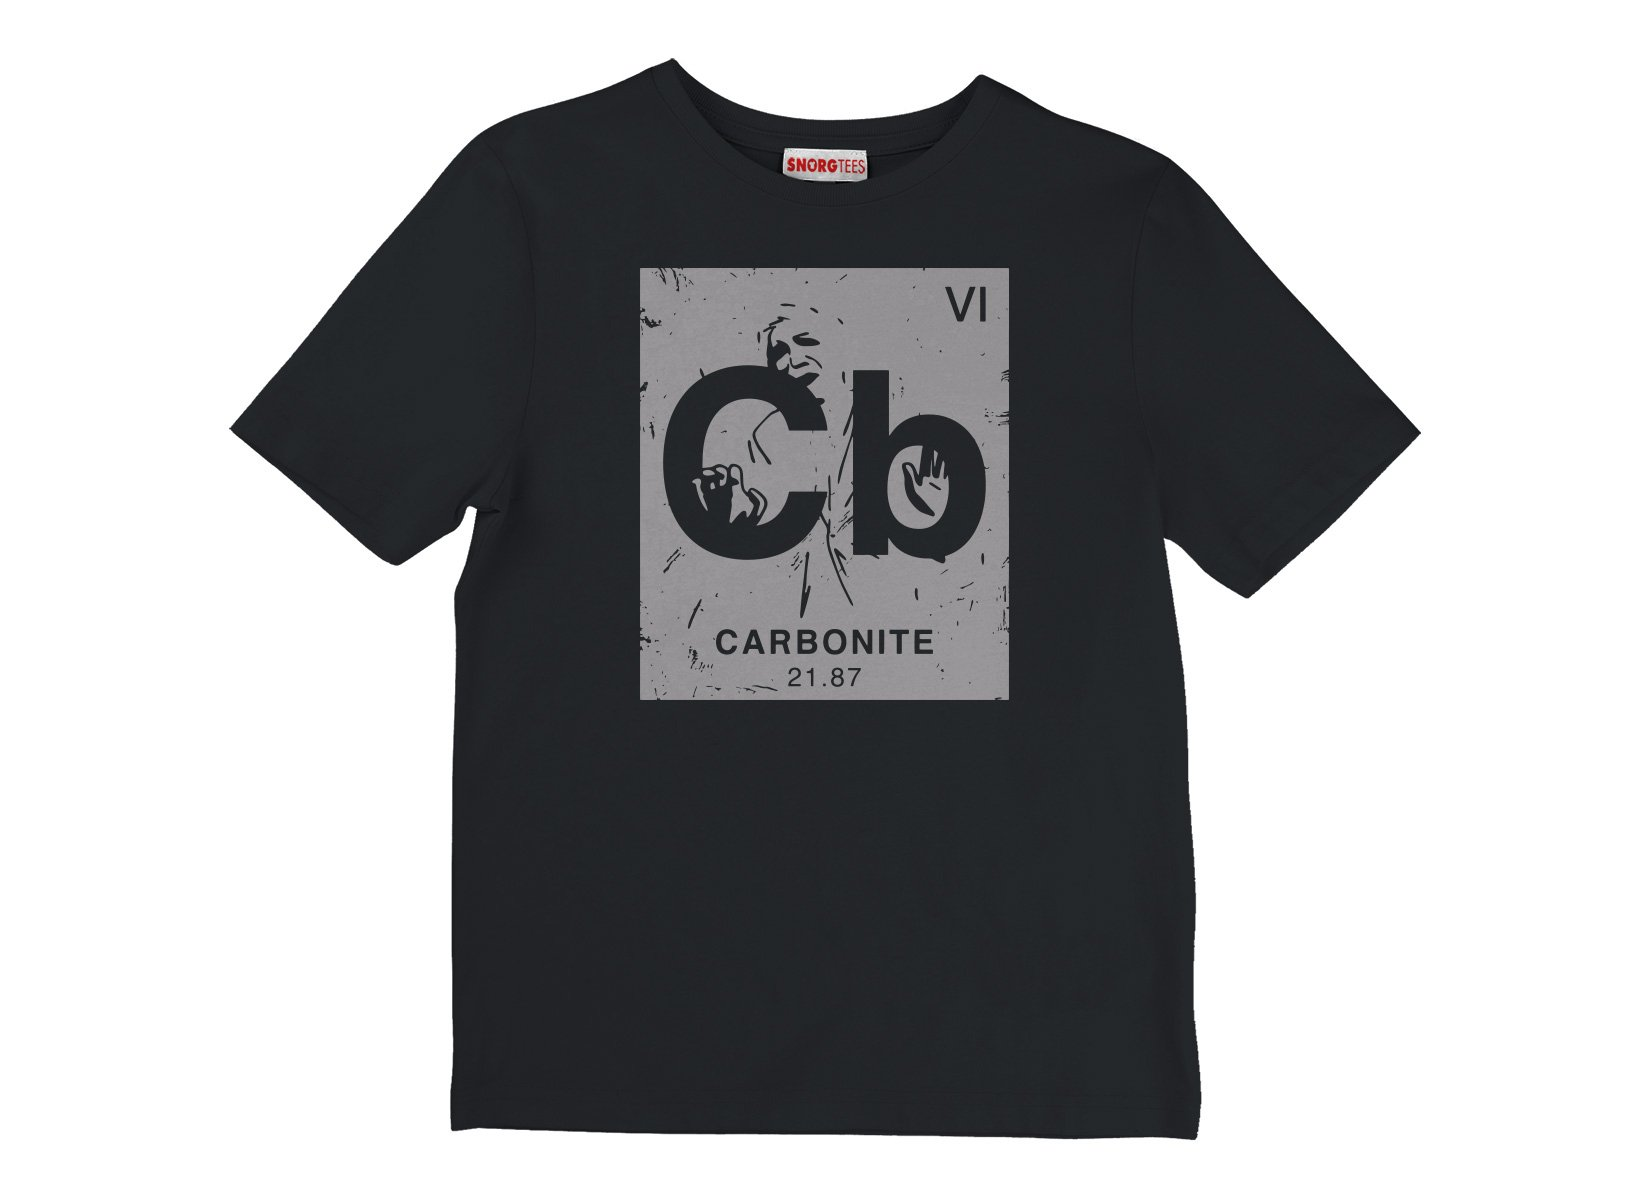 Carbonite Element on Kids T-Shirt